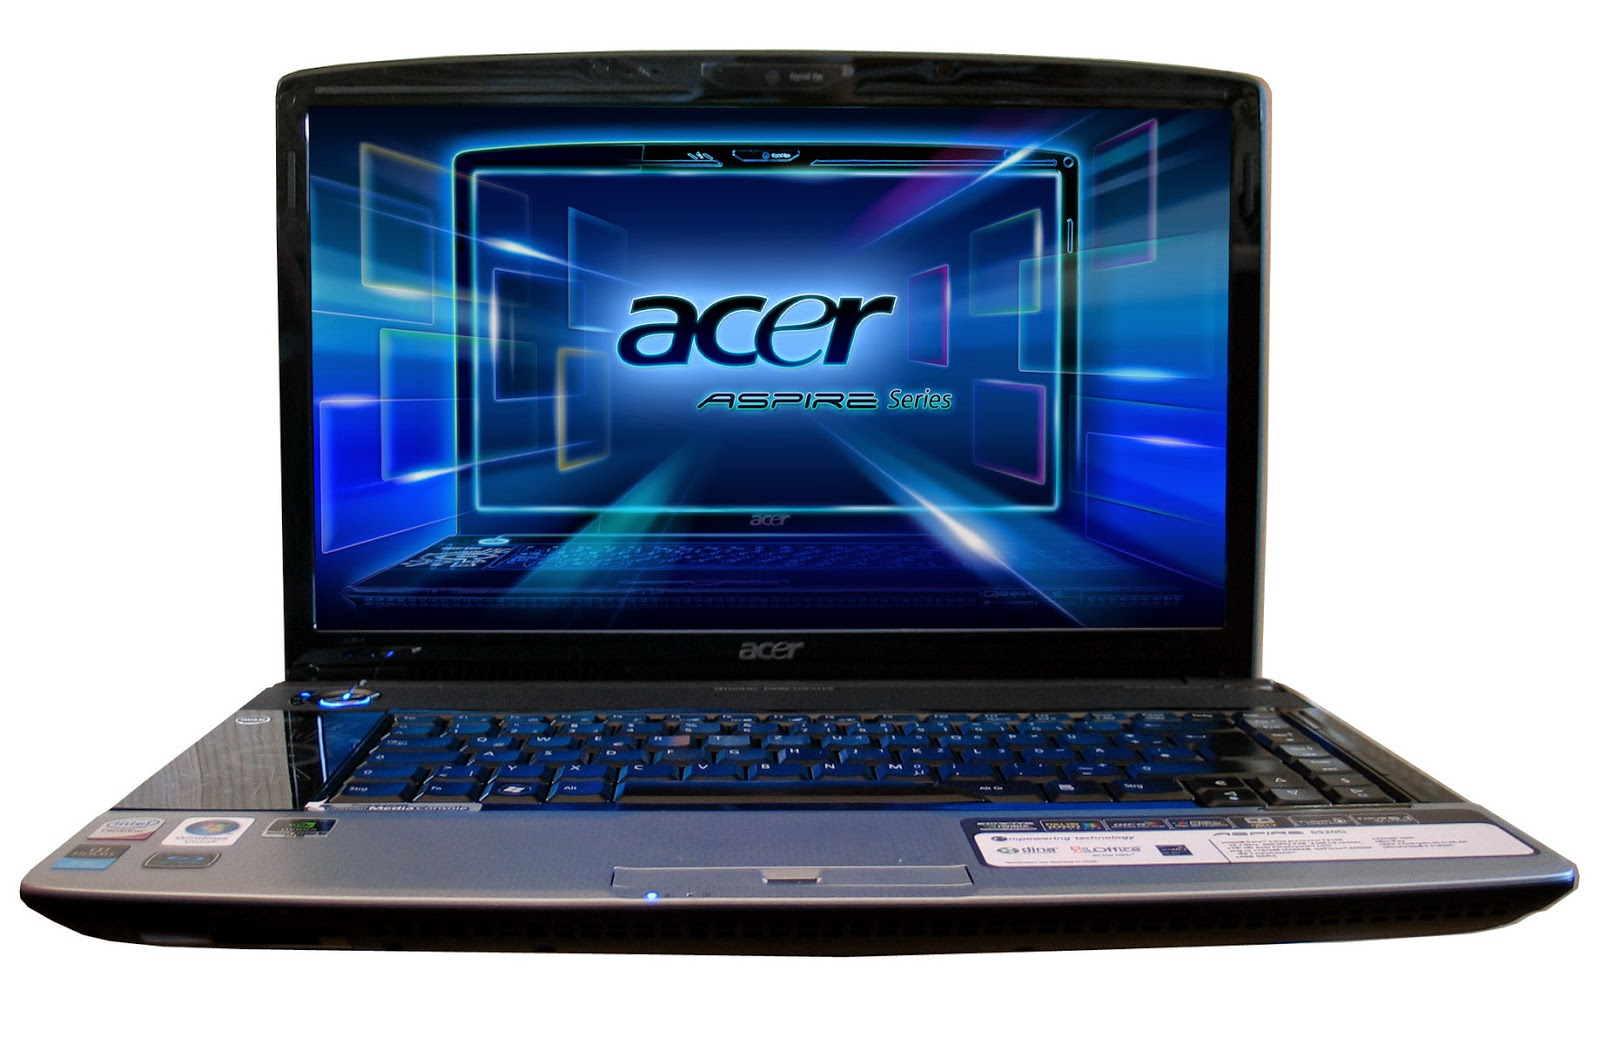 Intel vga driver windows 7 64 acer